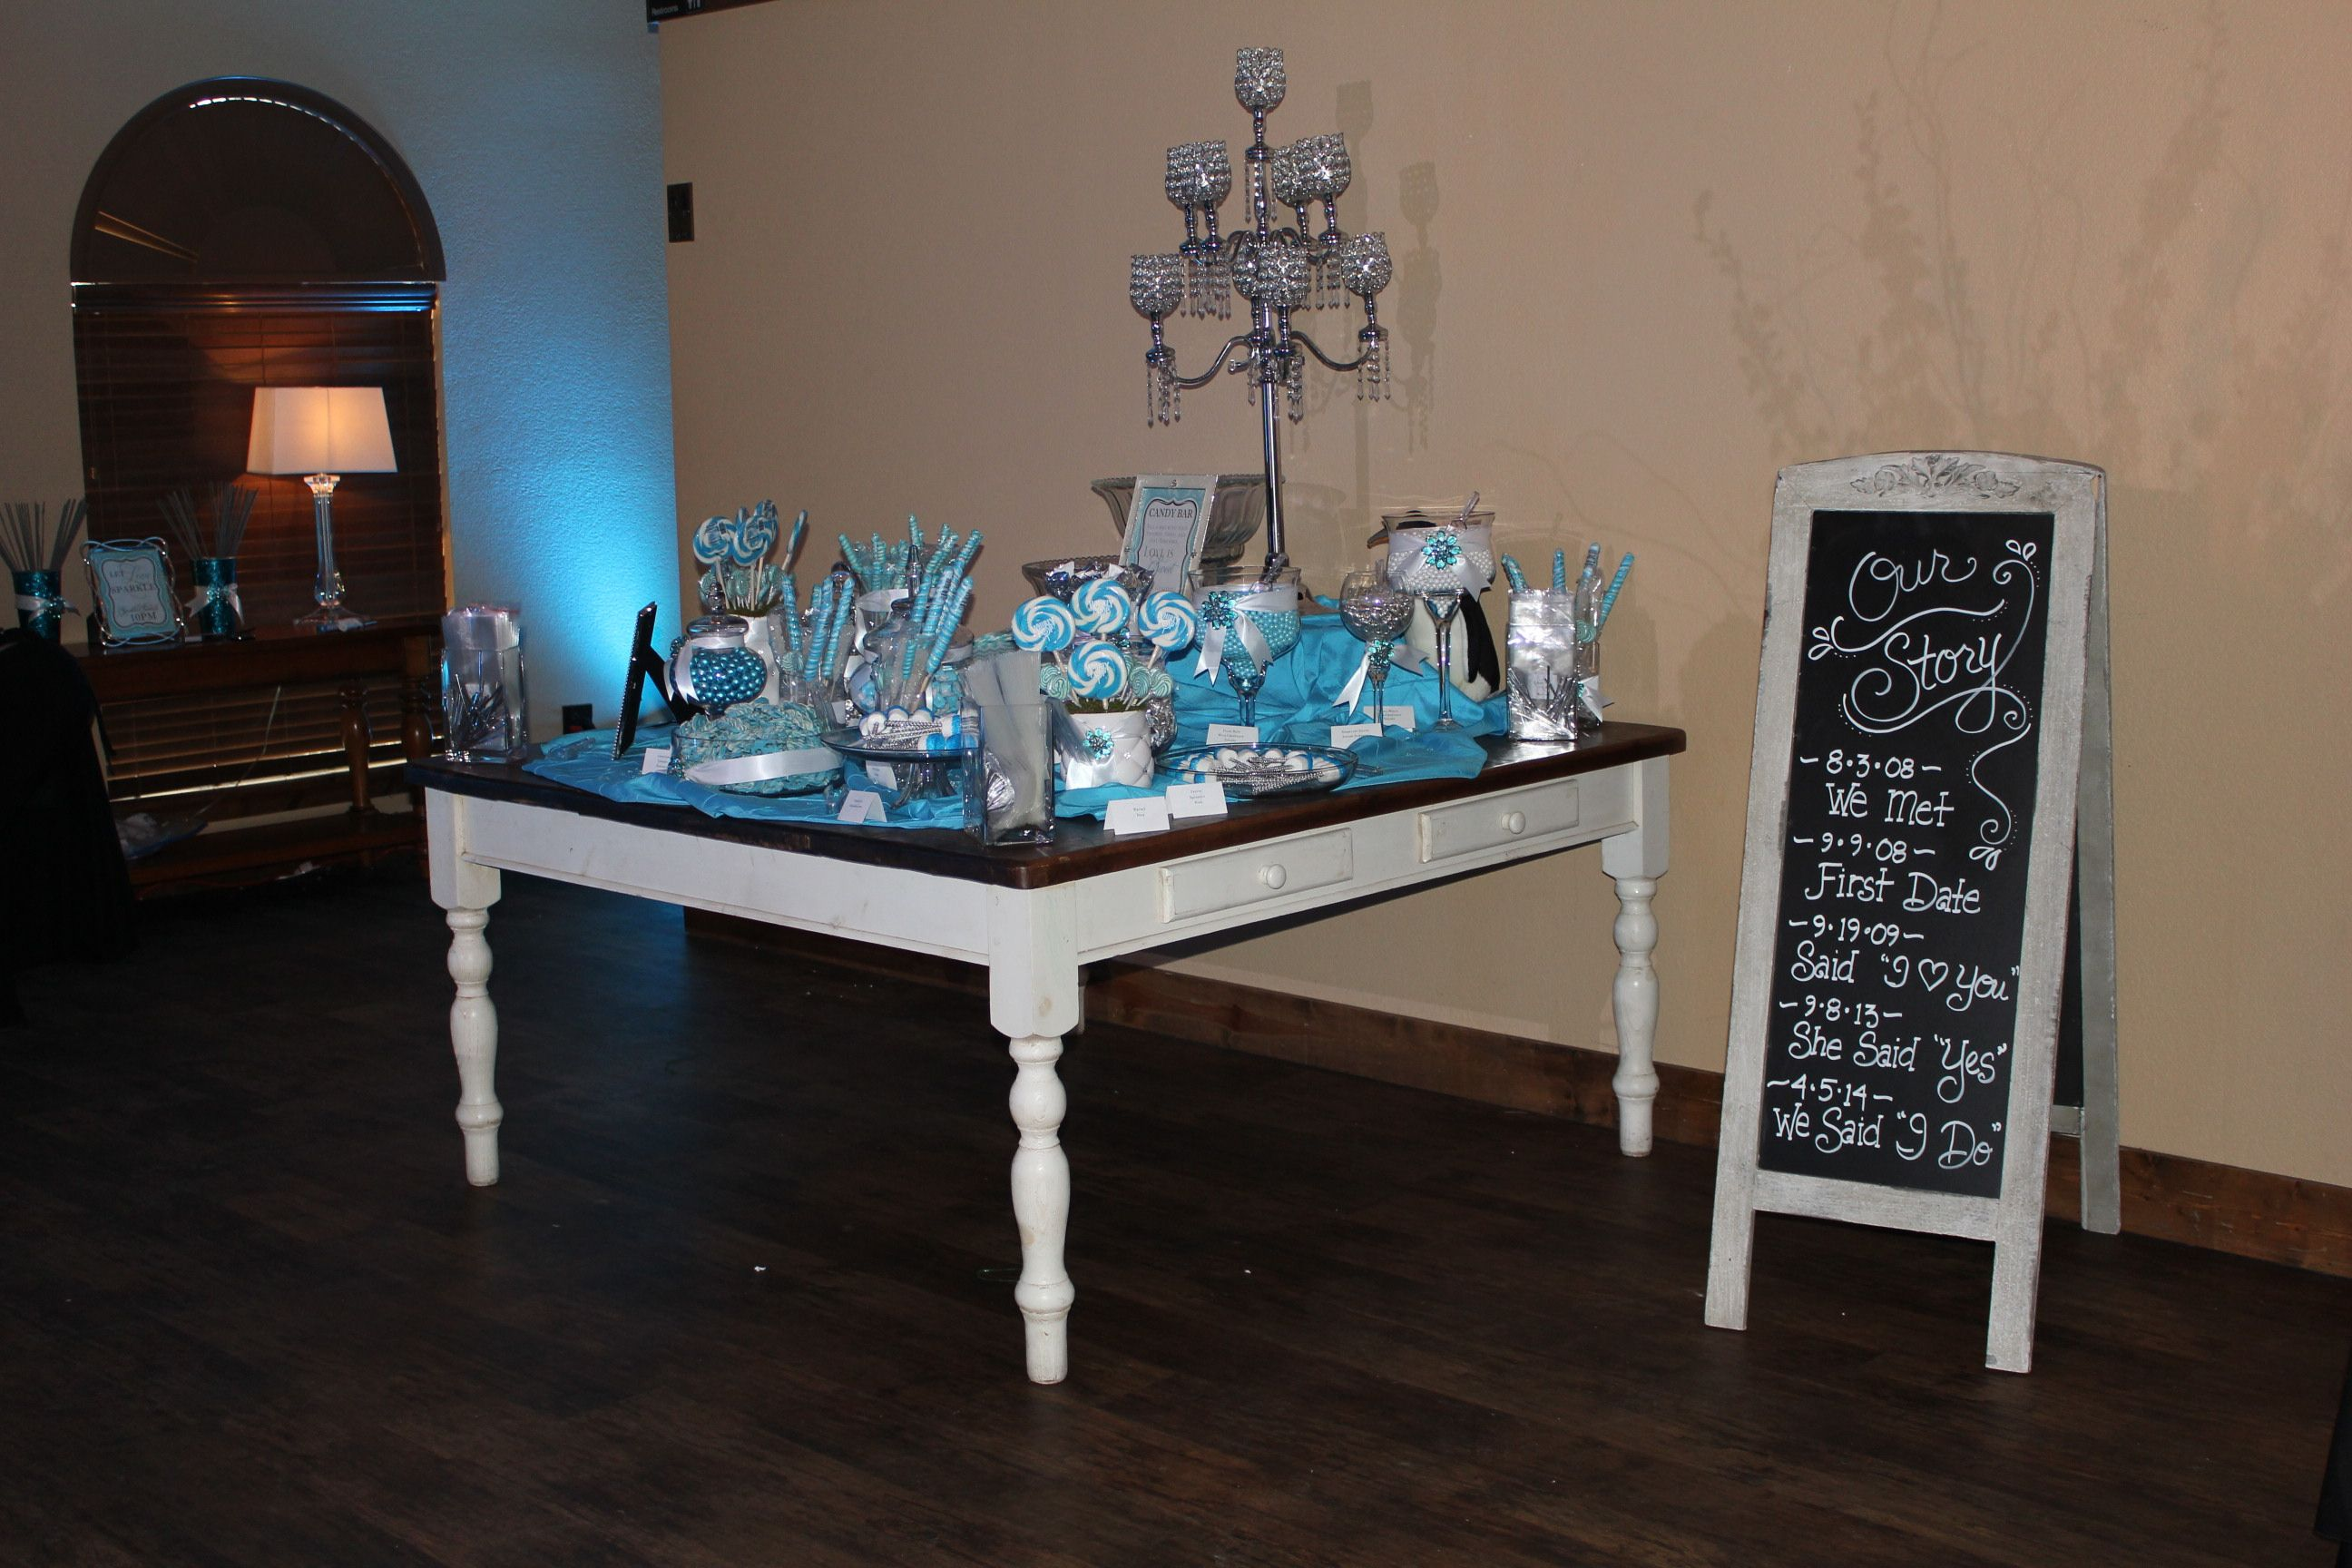 Wedding decorations rental  Candy Bar Set up  Rental Items  Pinterest  Weddings